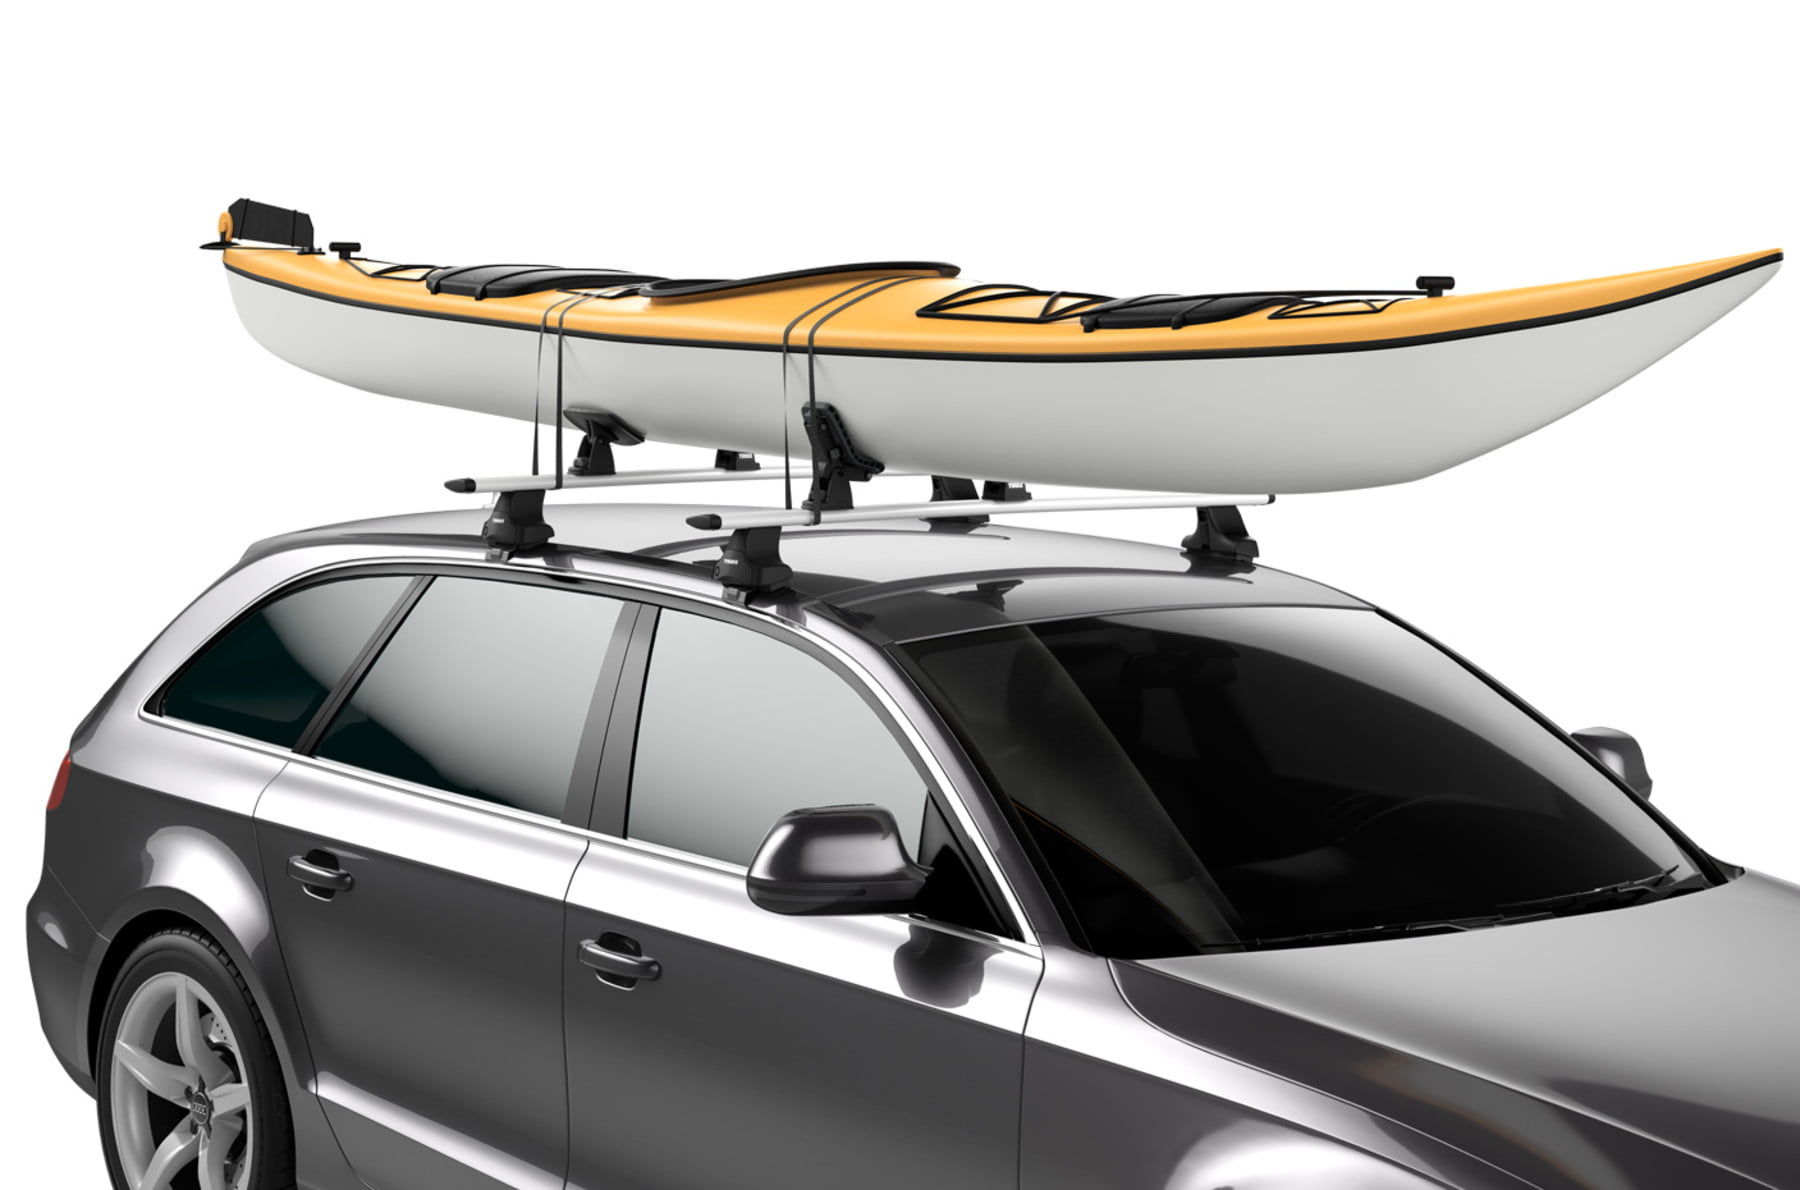 Suport transport echipament nautic Thule DockGlide 896 2